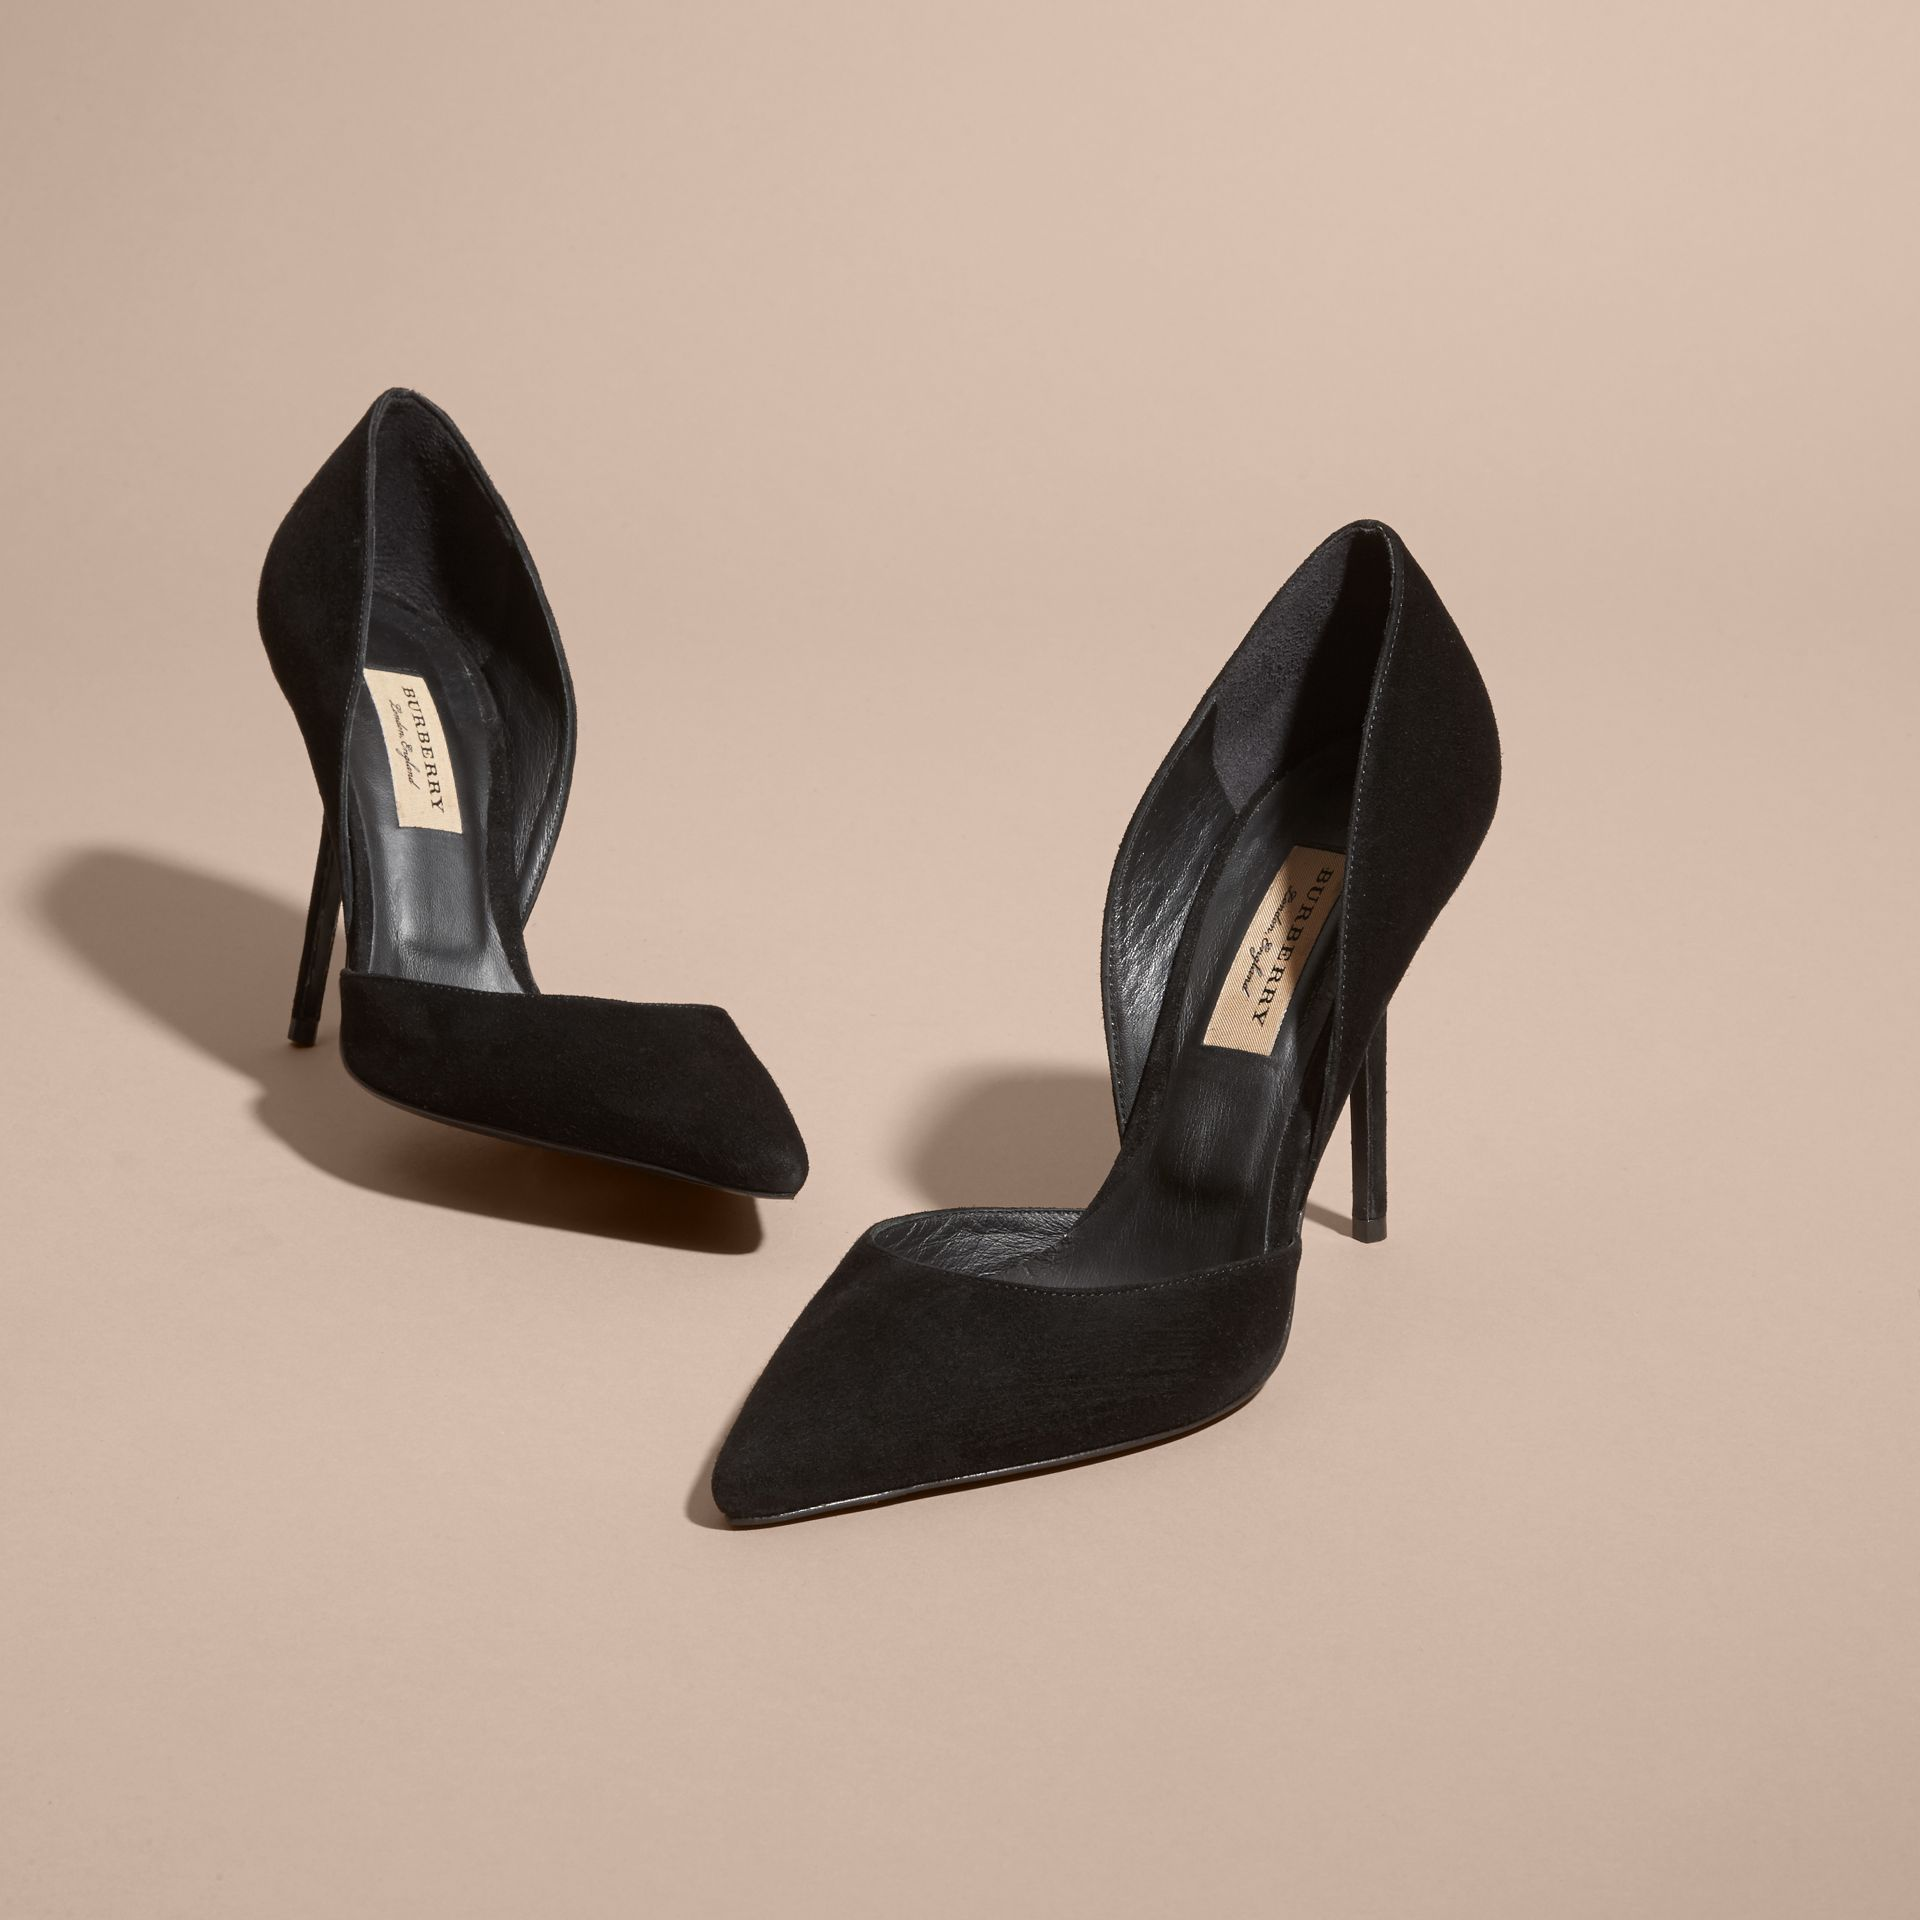 Point-toe Suede D'Orsay Pumps in Black - Women | Burberry - gallery image 4